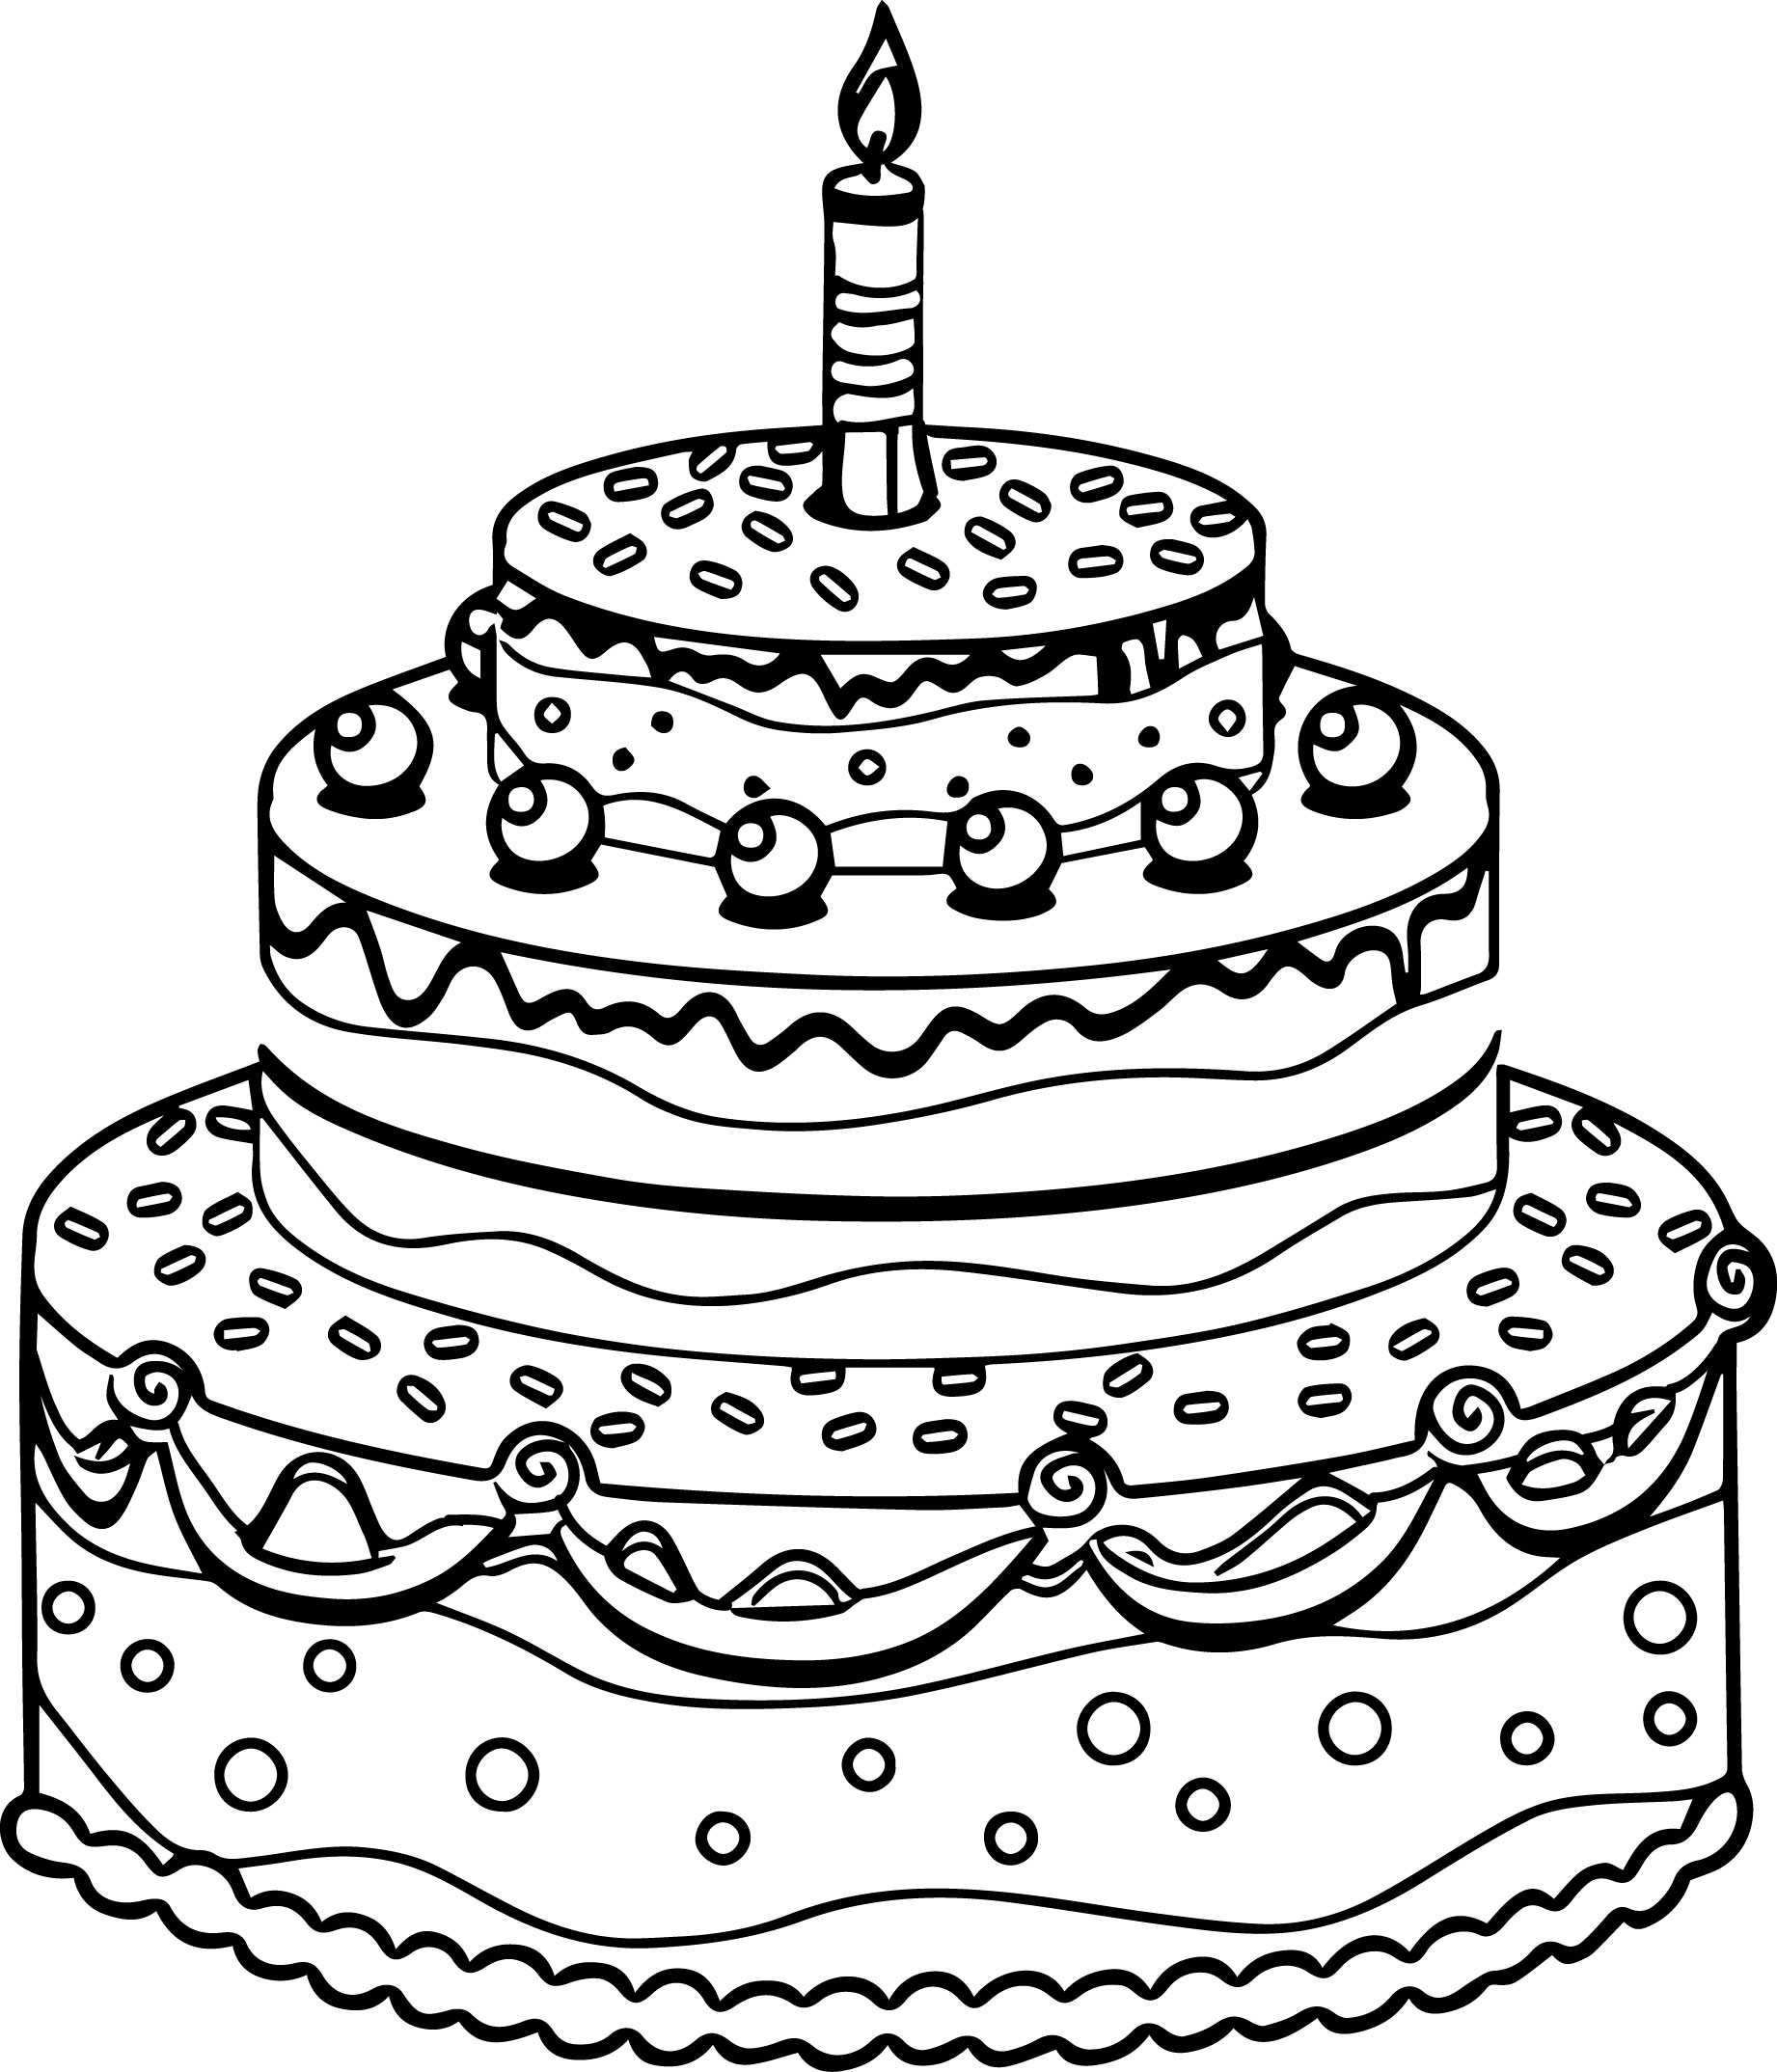 birthday cake coloring pages free ; birthday-cake-coloring-pages-menmadehome-coloring-page-of-a-birthday-cake